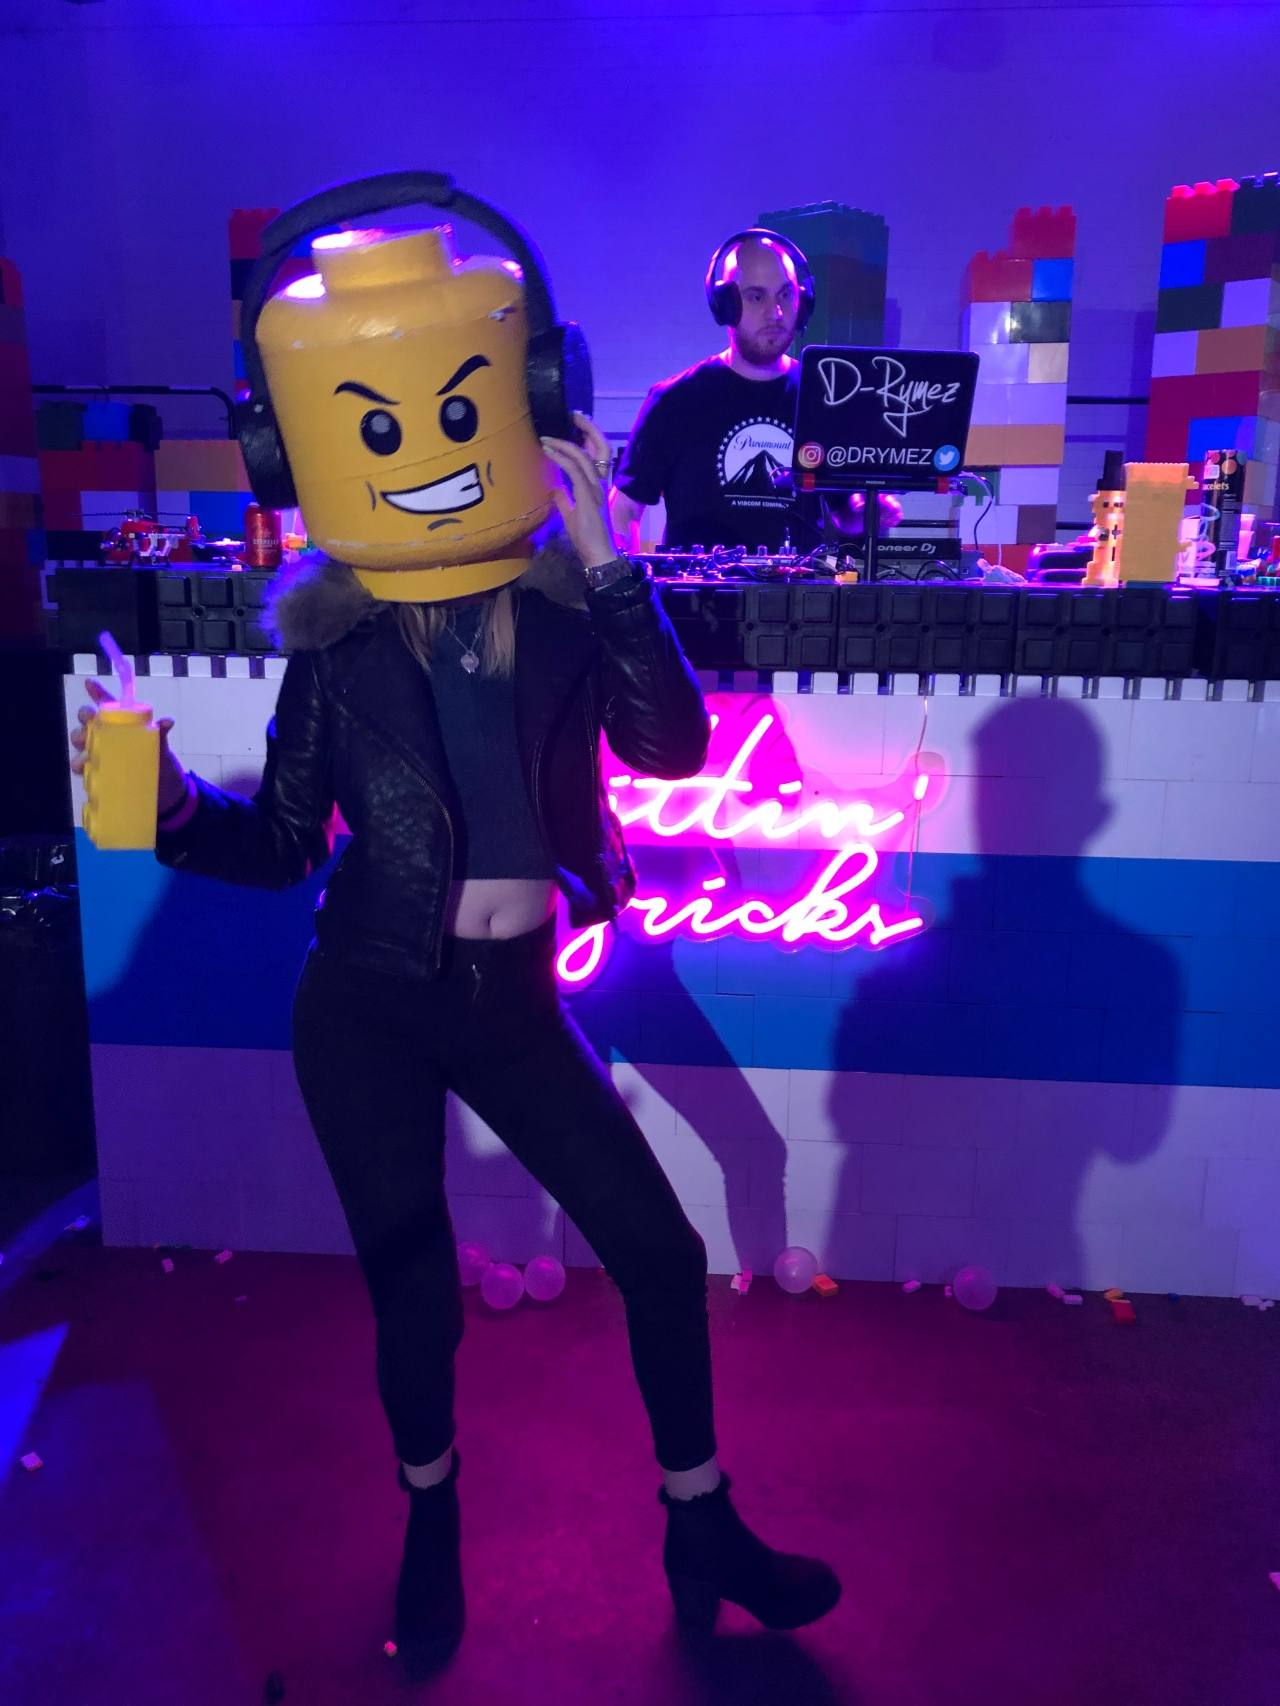 Brick Bar – Lego bricks and ball pits